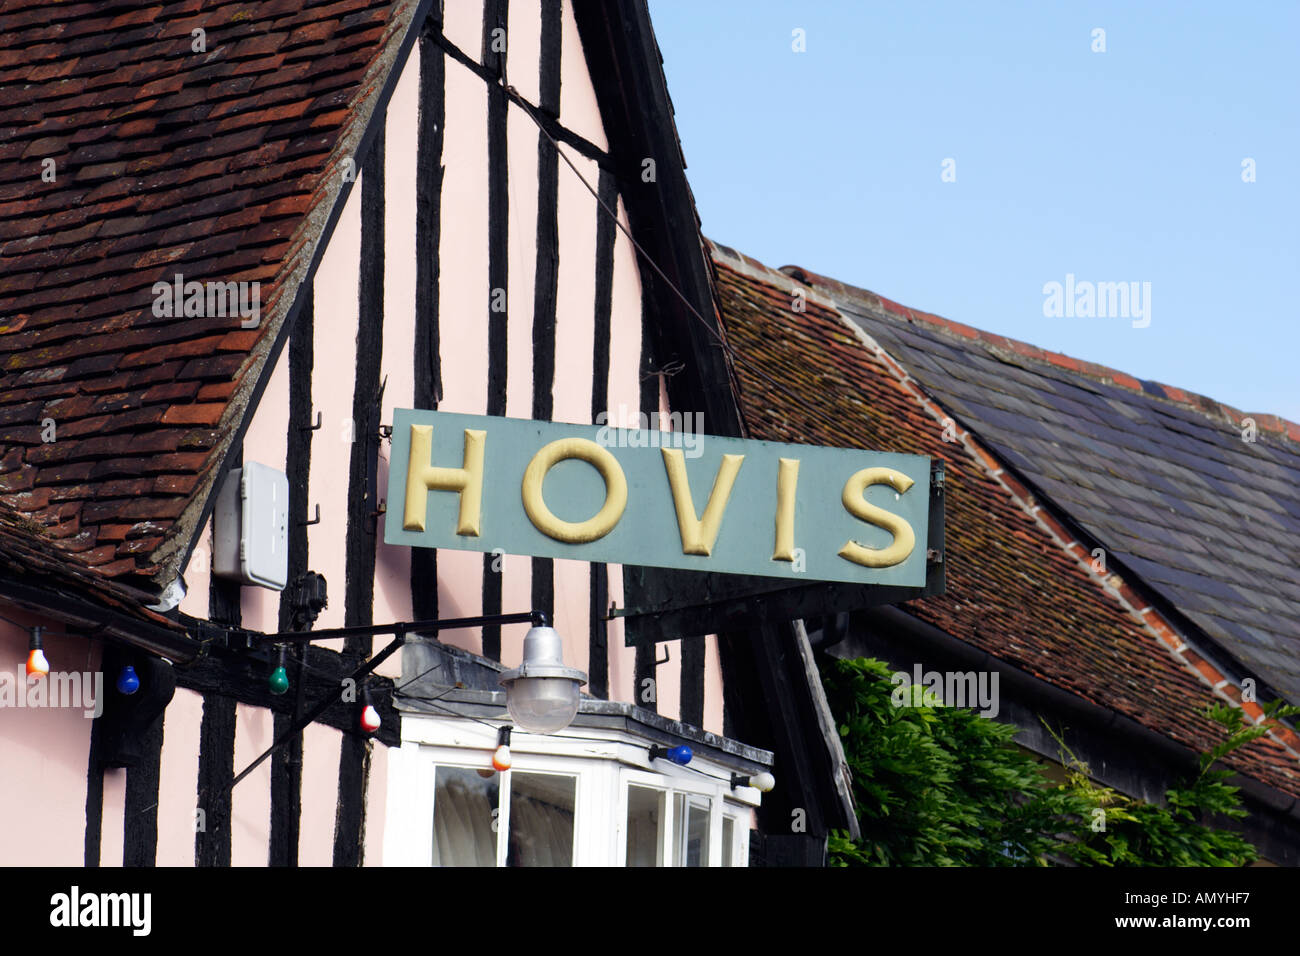 Picturesque idyllic and typically English architecture found in Lavenham Suffolk East Anglia UK - Stock Image